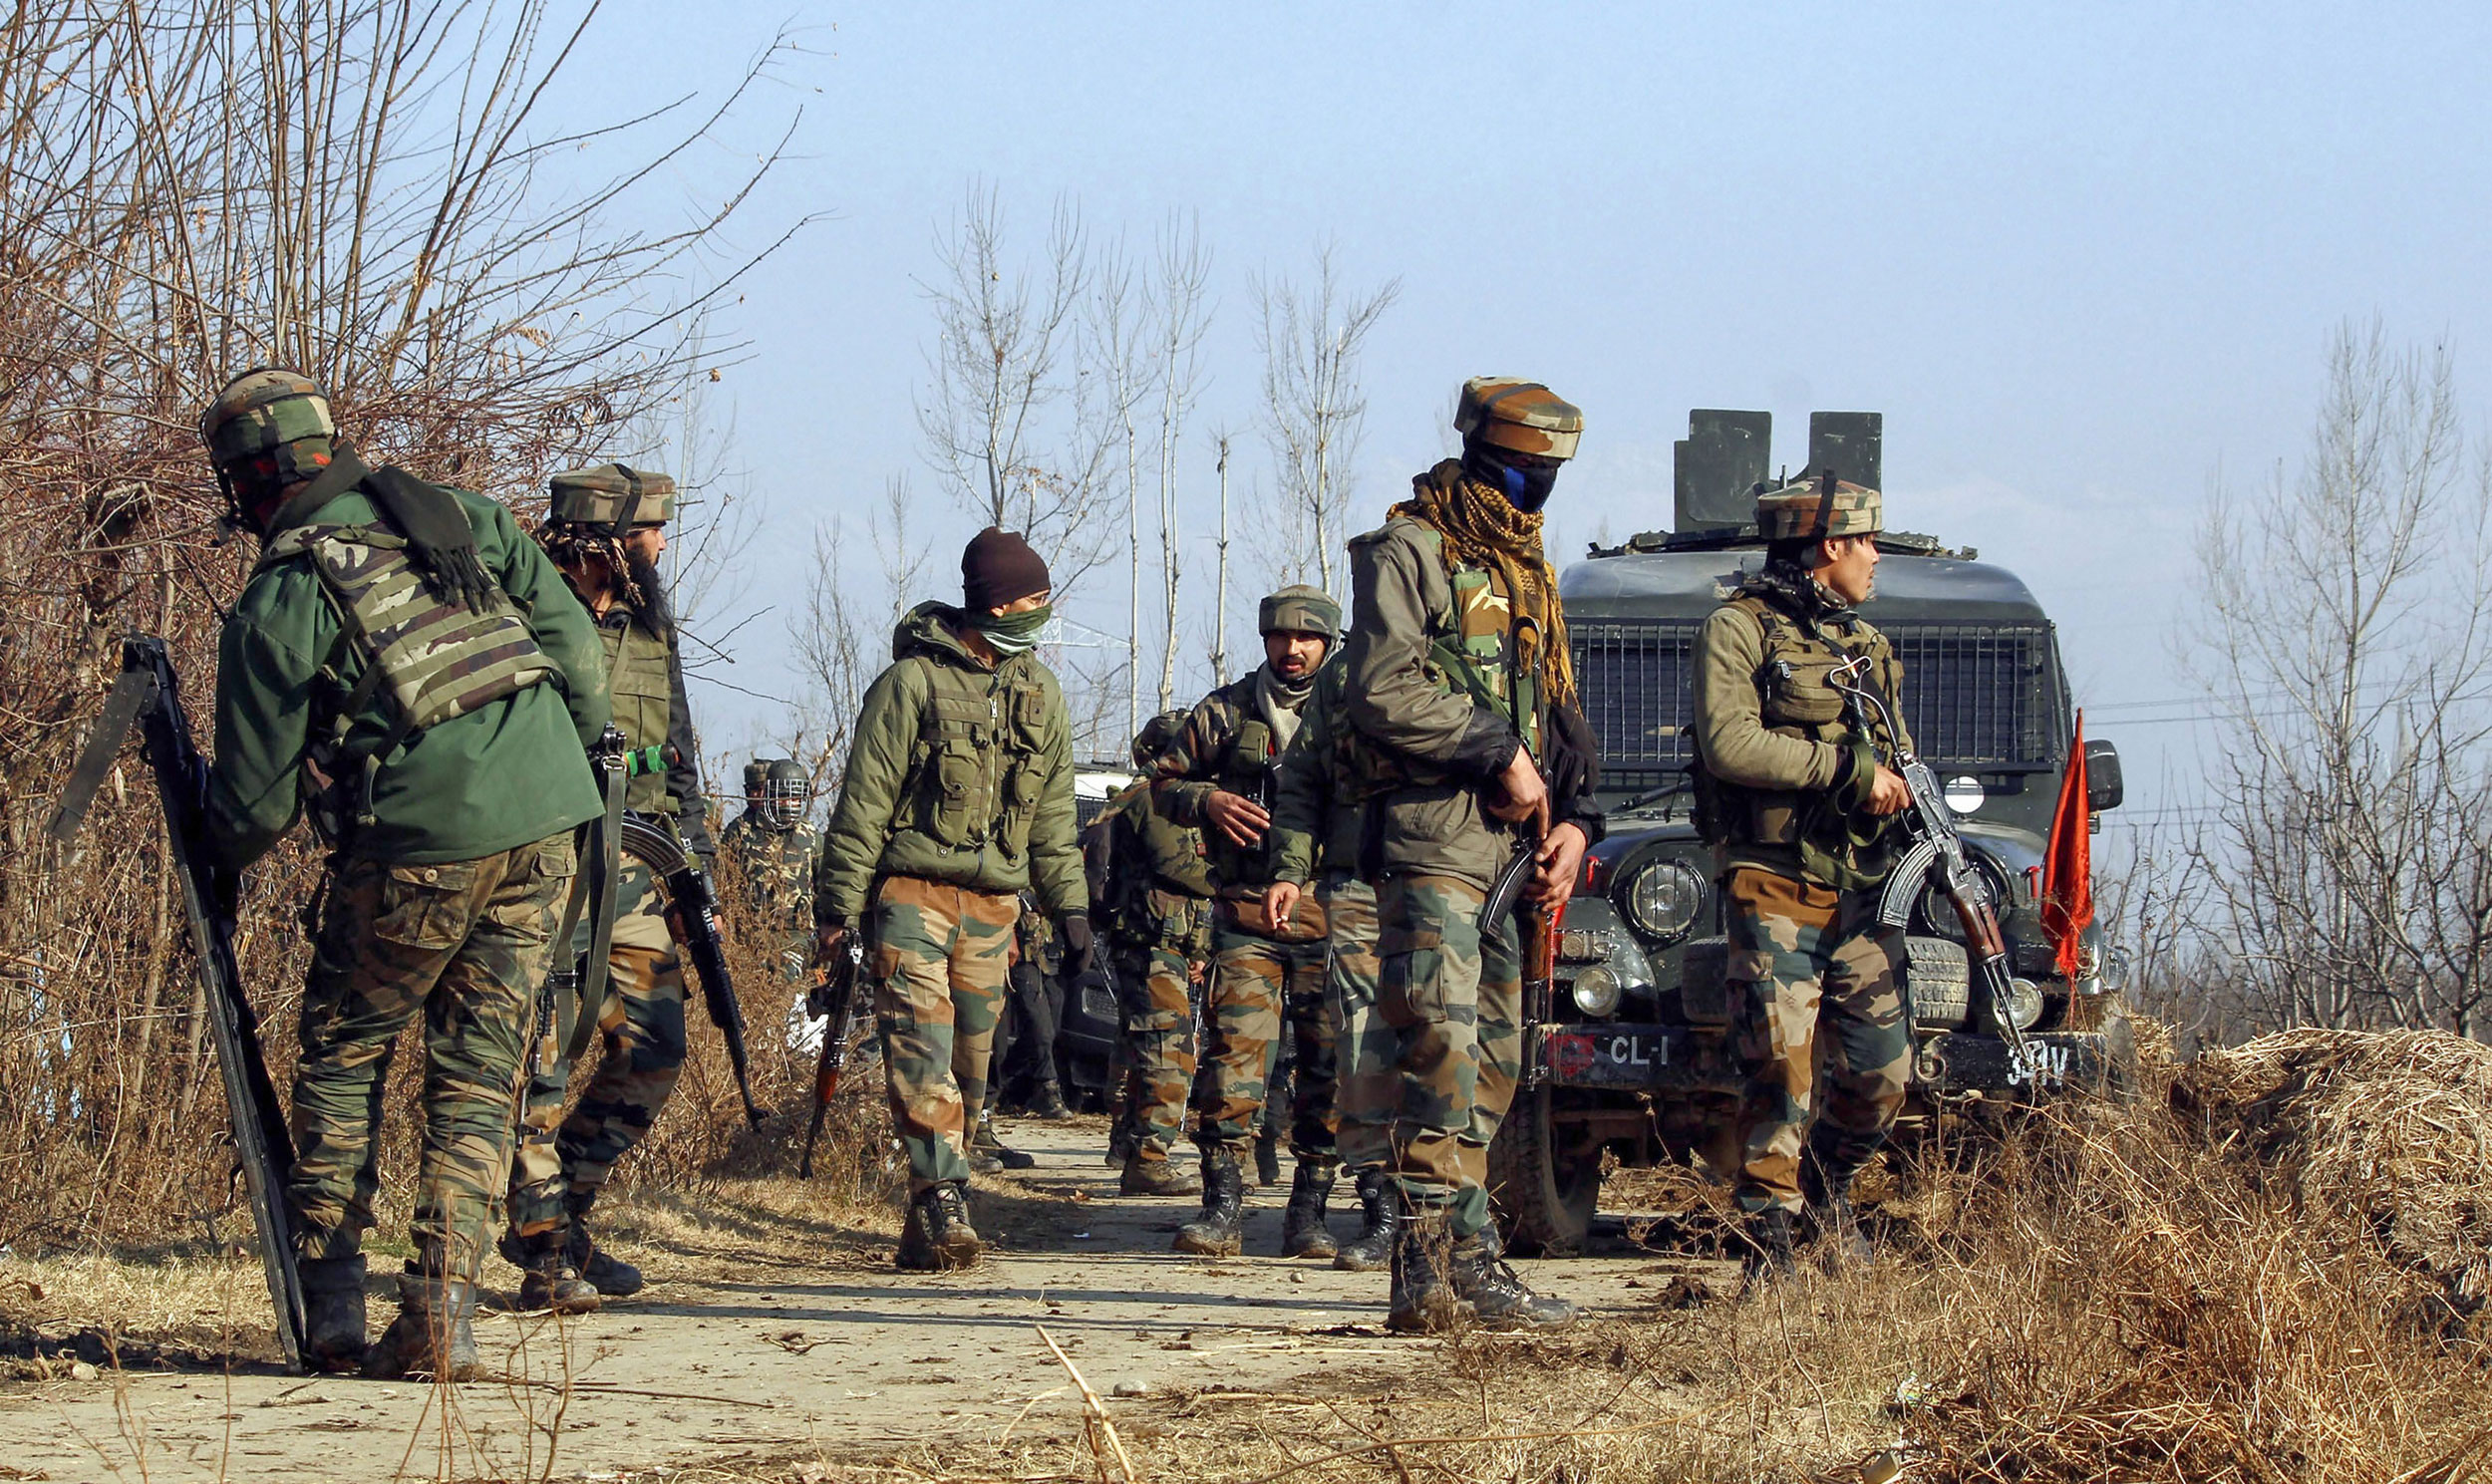 Soldiers take positions during an encounter with the militants at Sirnoo in Pulwama district of south Kashmir, on Saturday.